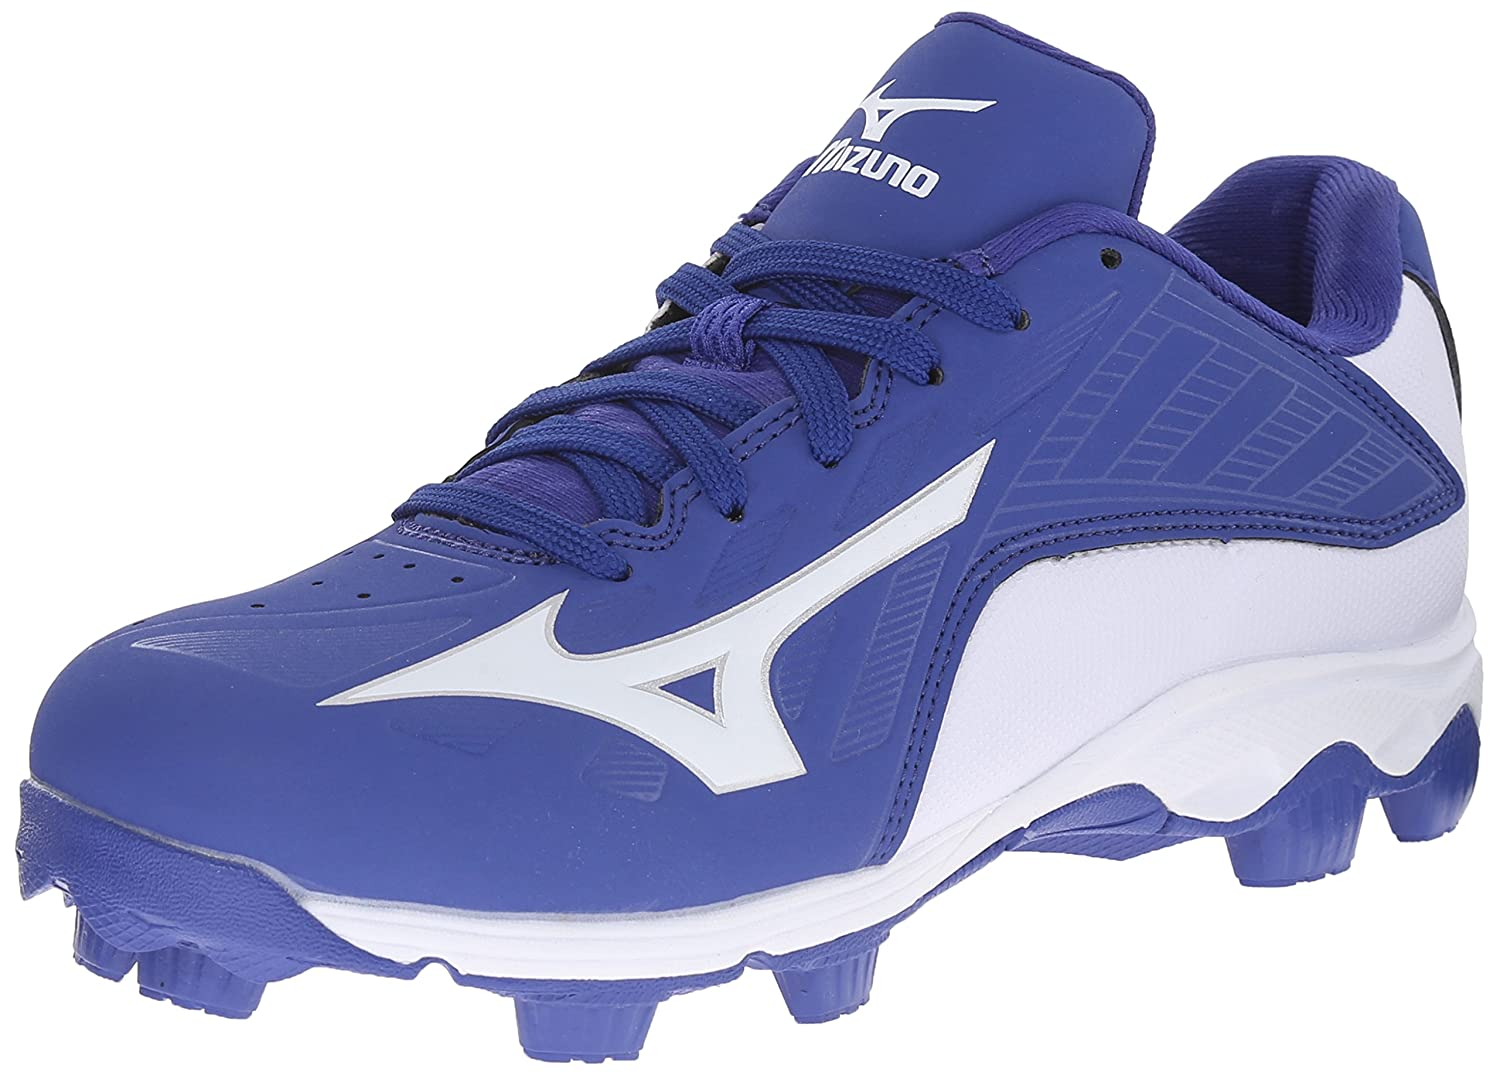 Mizuno Blue baseball cleats exclusive photo